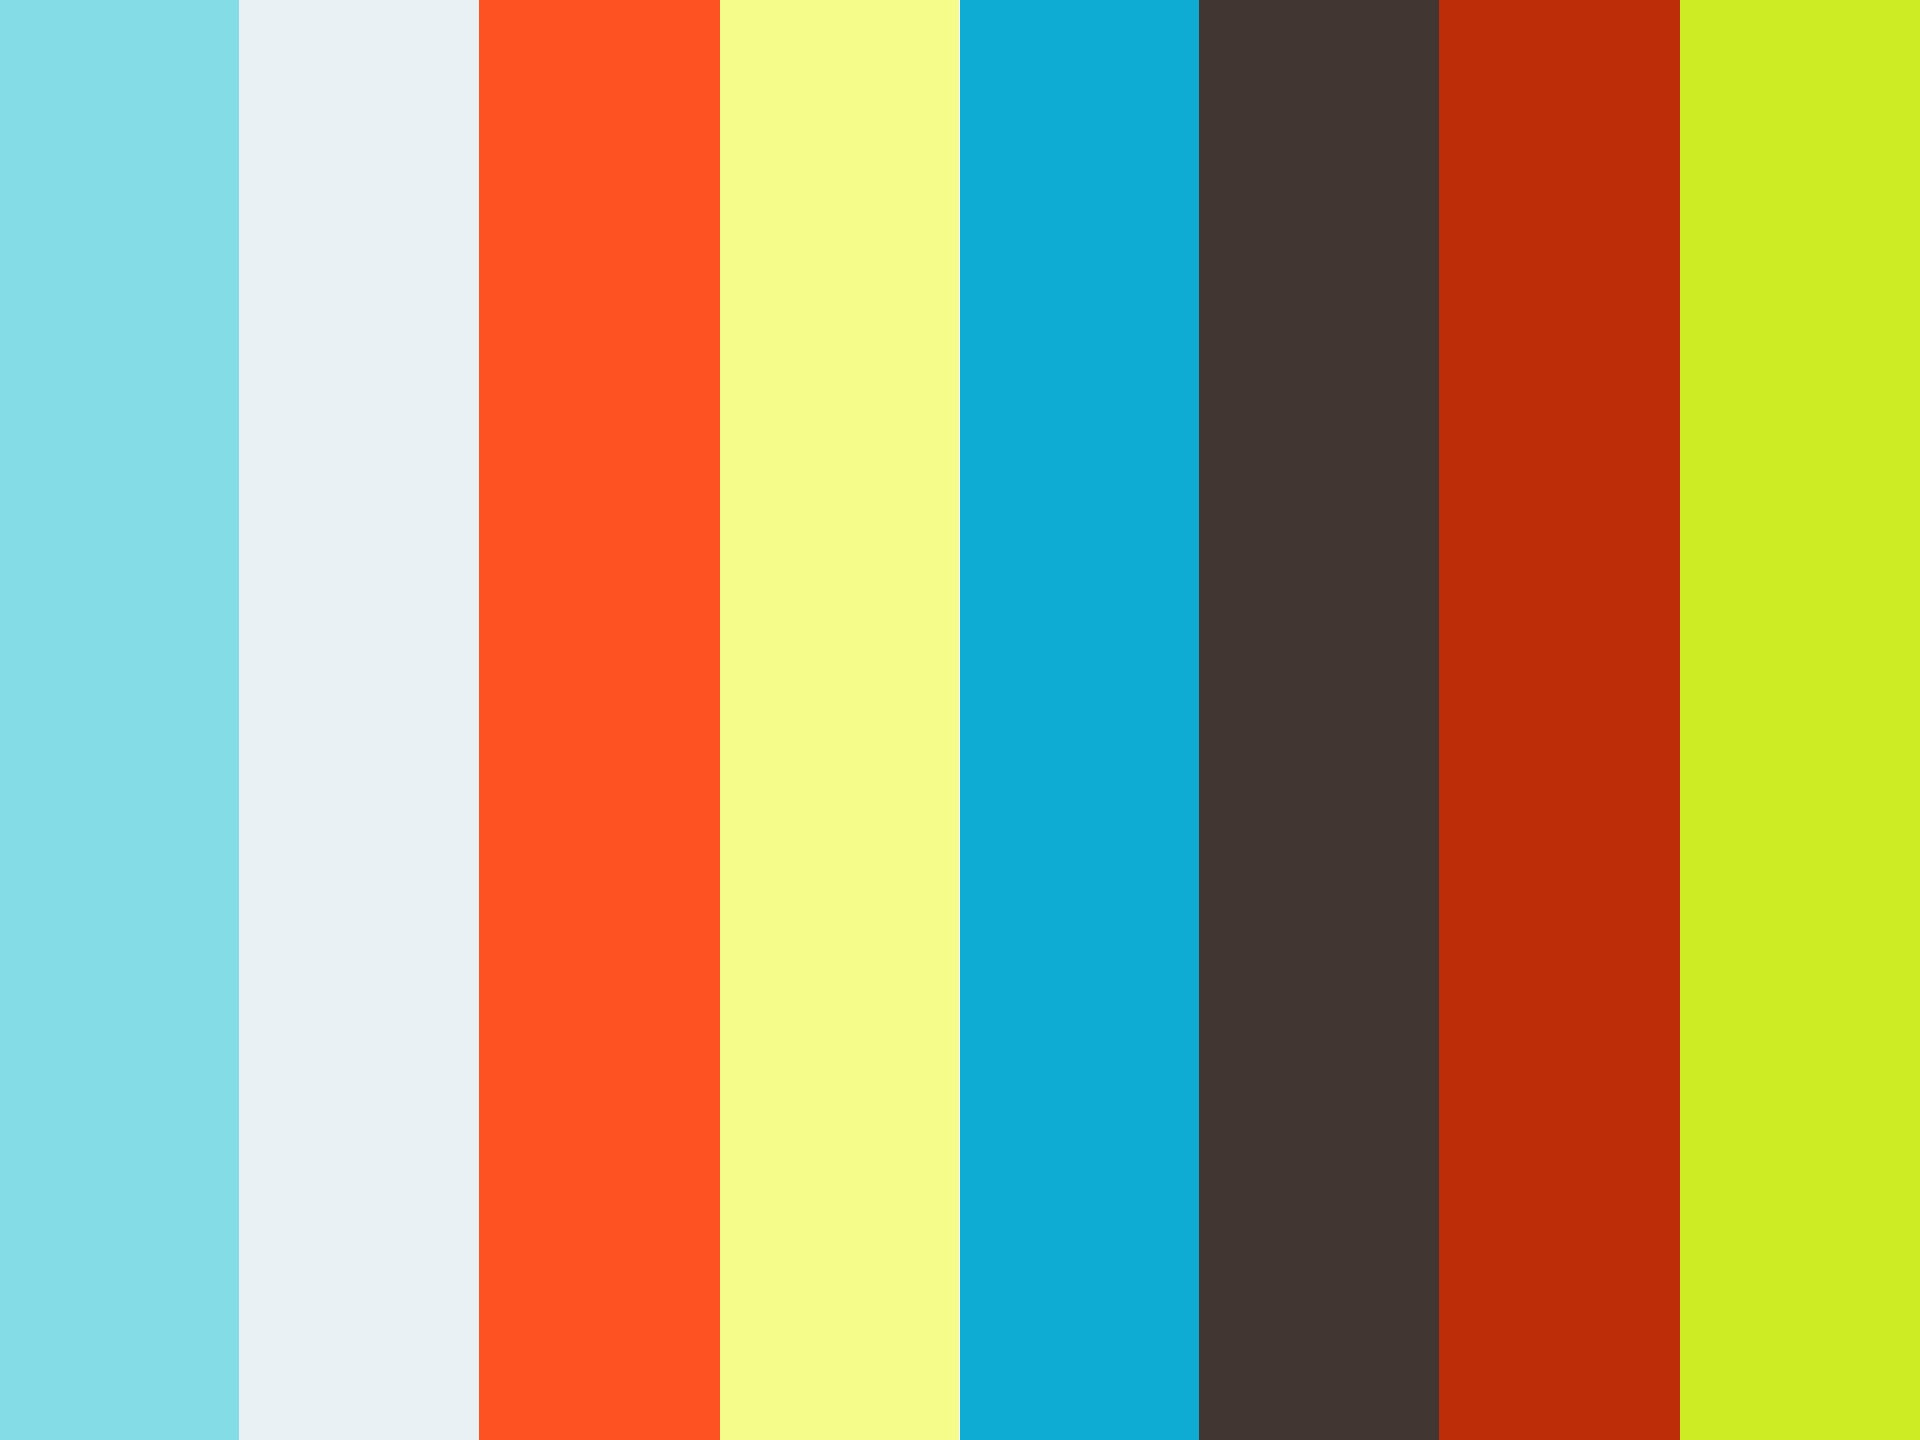 Do Biologics Change the Natural History of Severe Perianal Crohn's Disease Requiring Fecal Diversion? 2013